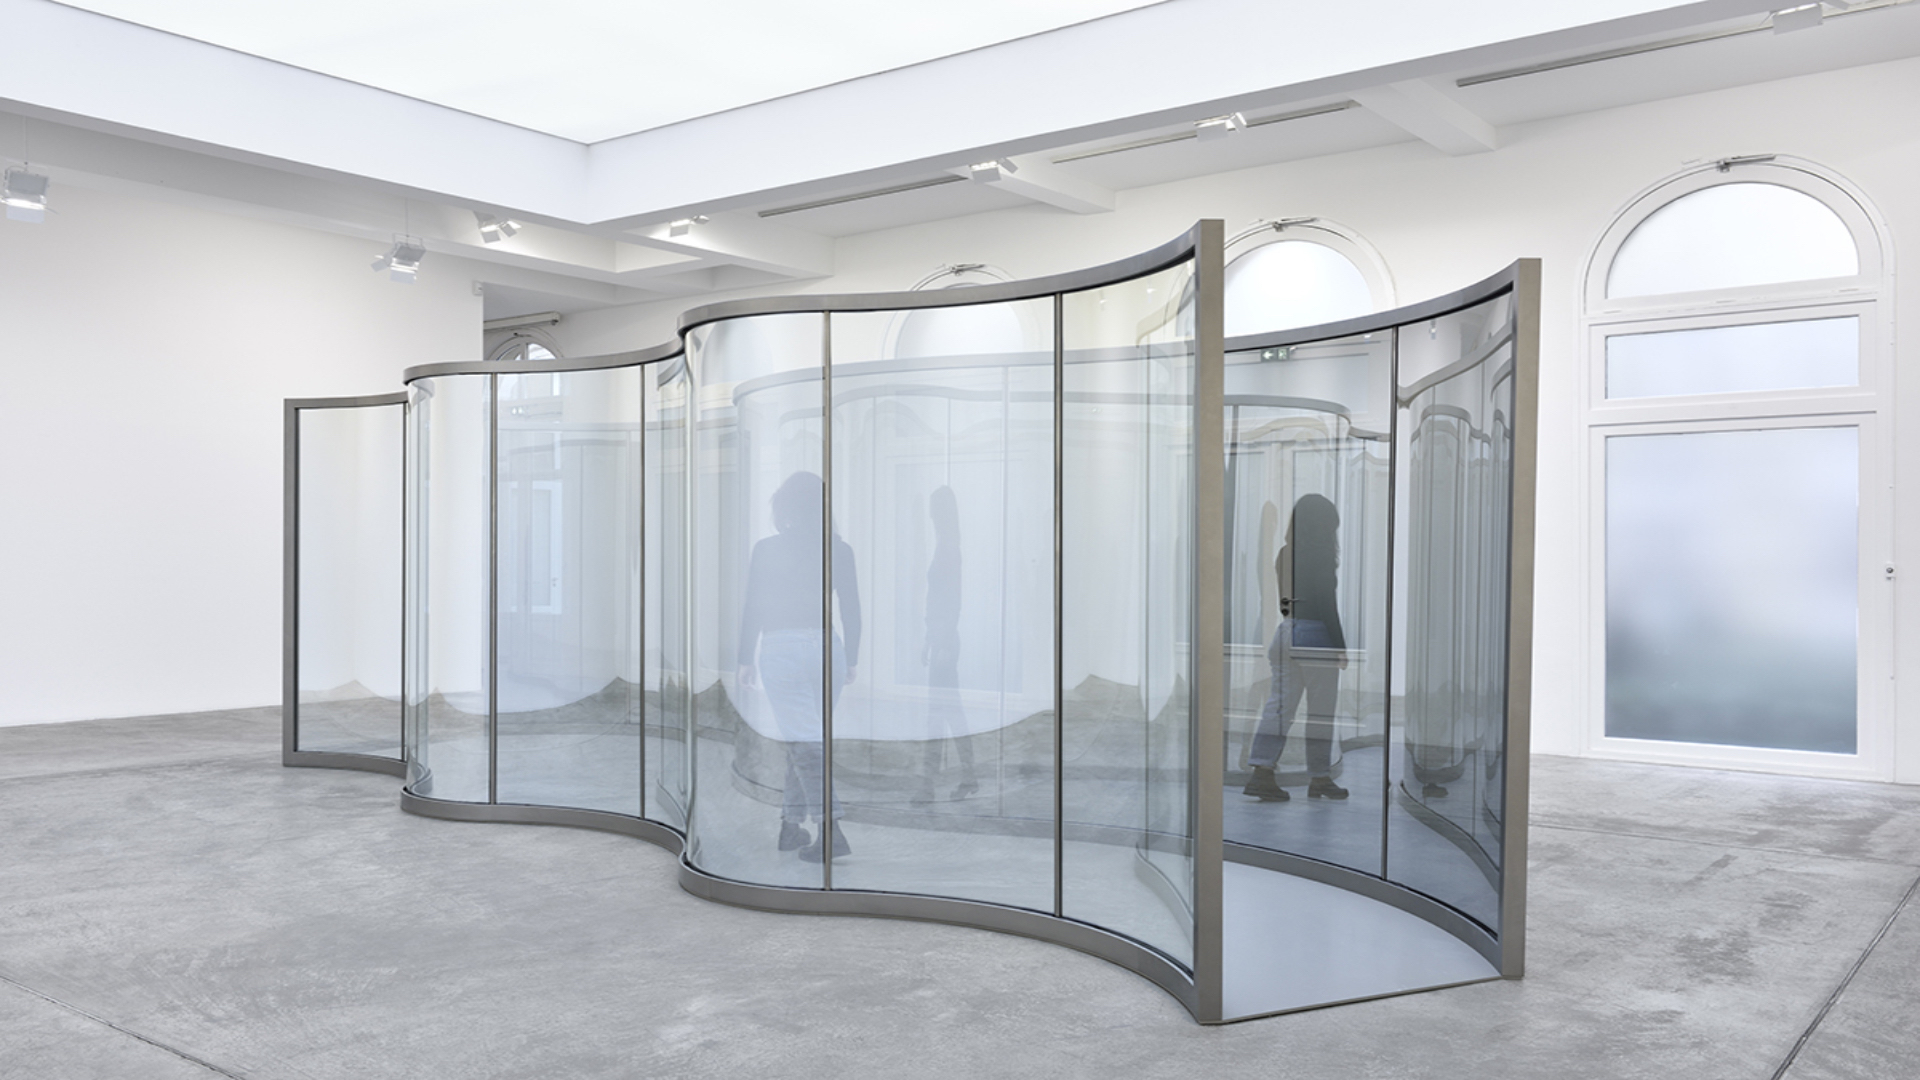 Dan Graham reveals his new pavilion at Marian Goodman Gallery Paris